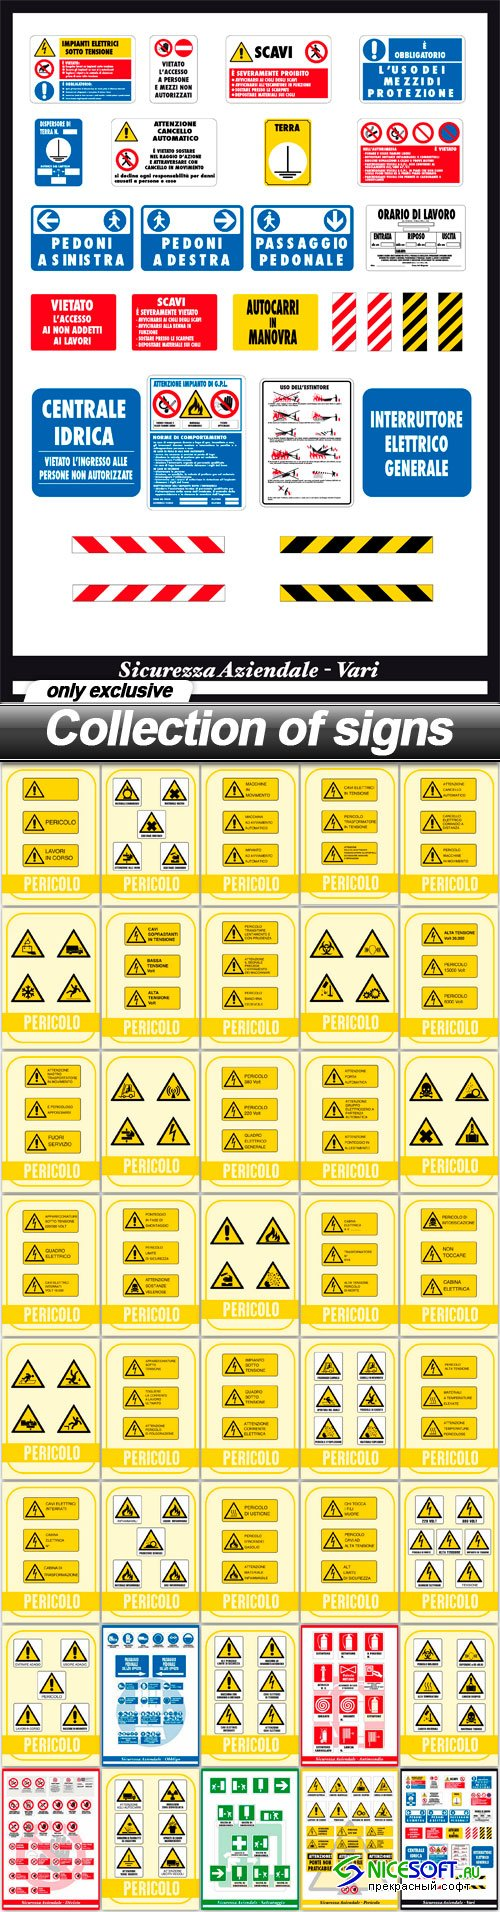 Collection of signs